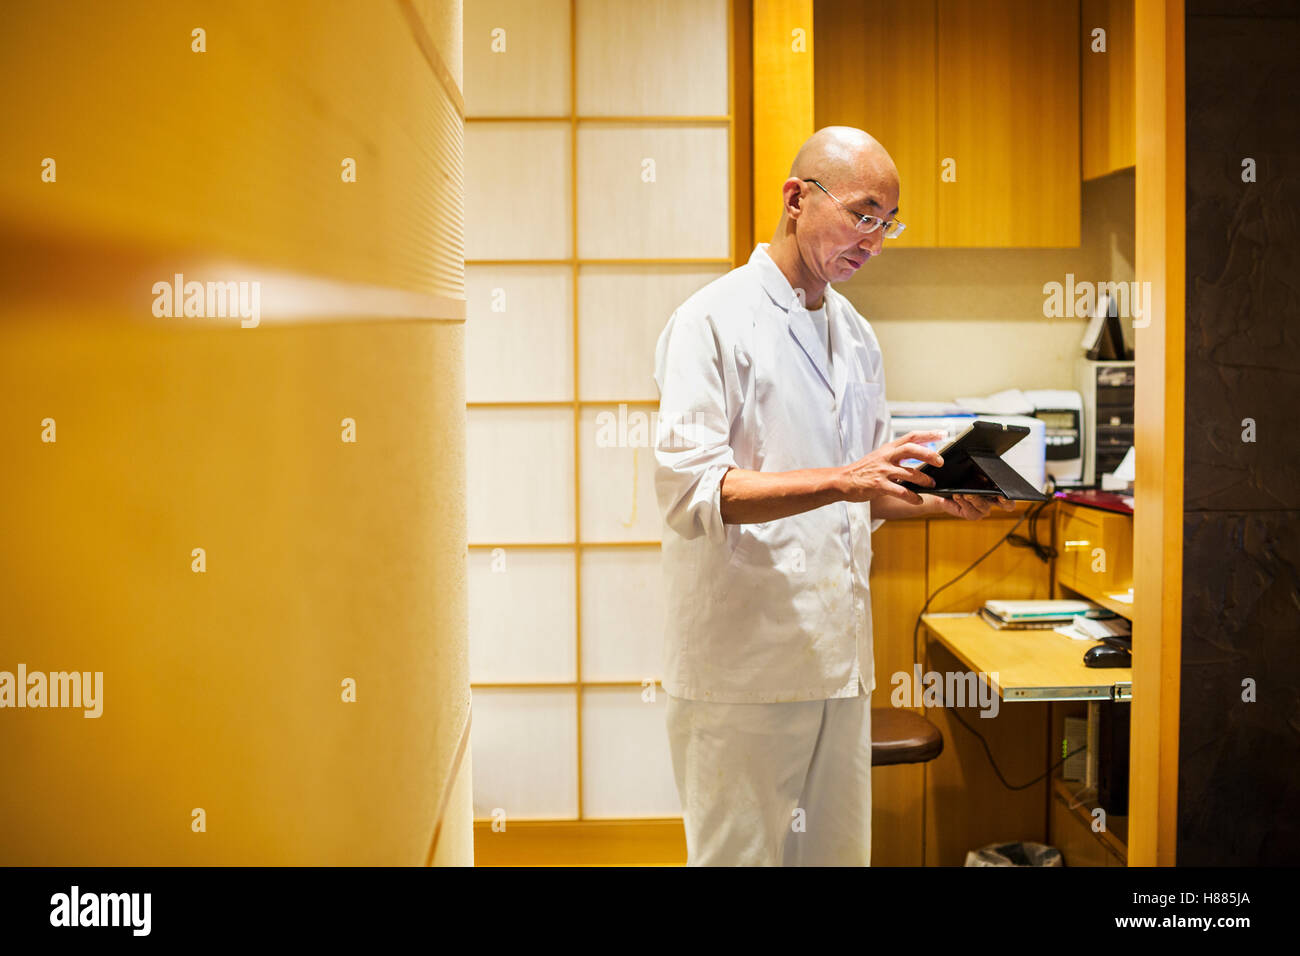 A chef in a small commercial kitchen, an itamae or master chef using a digital tablet. - Stock Image